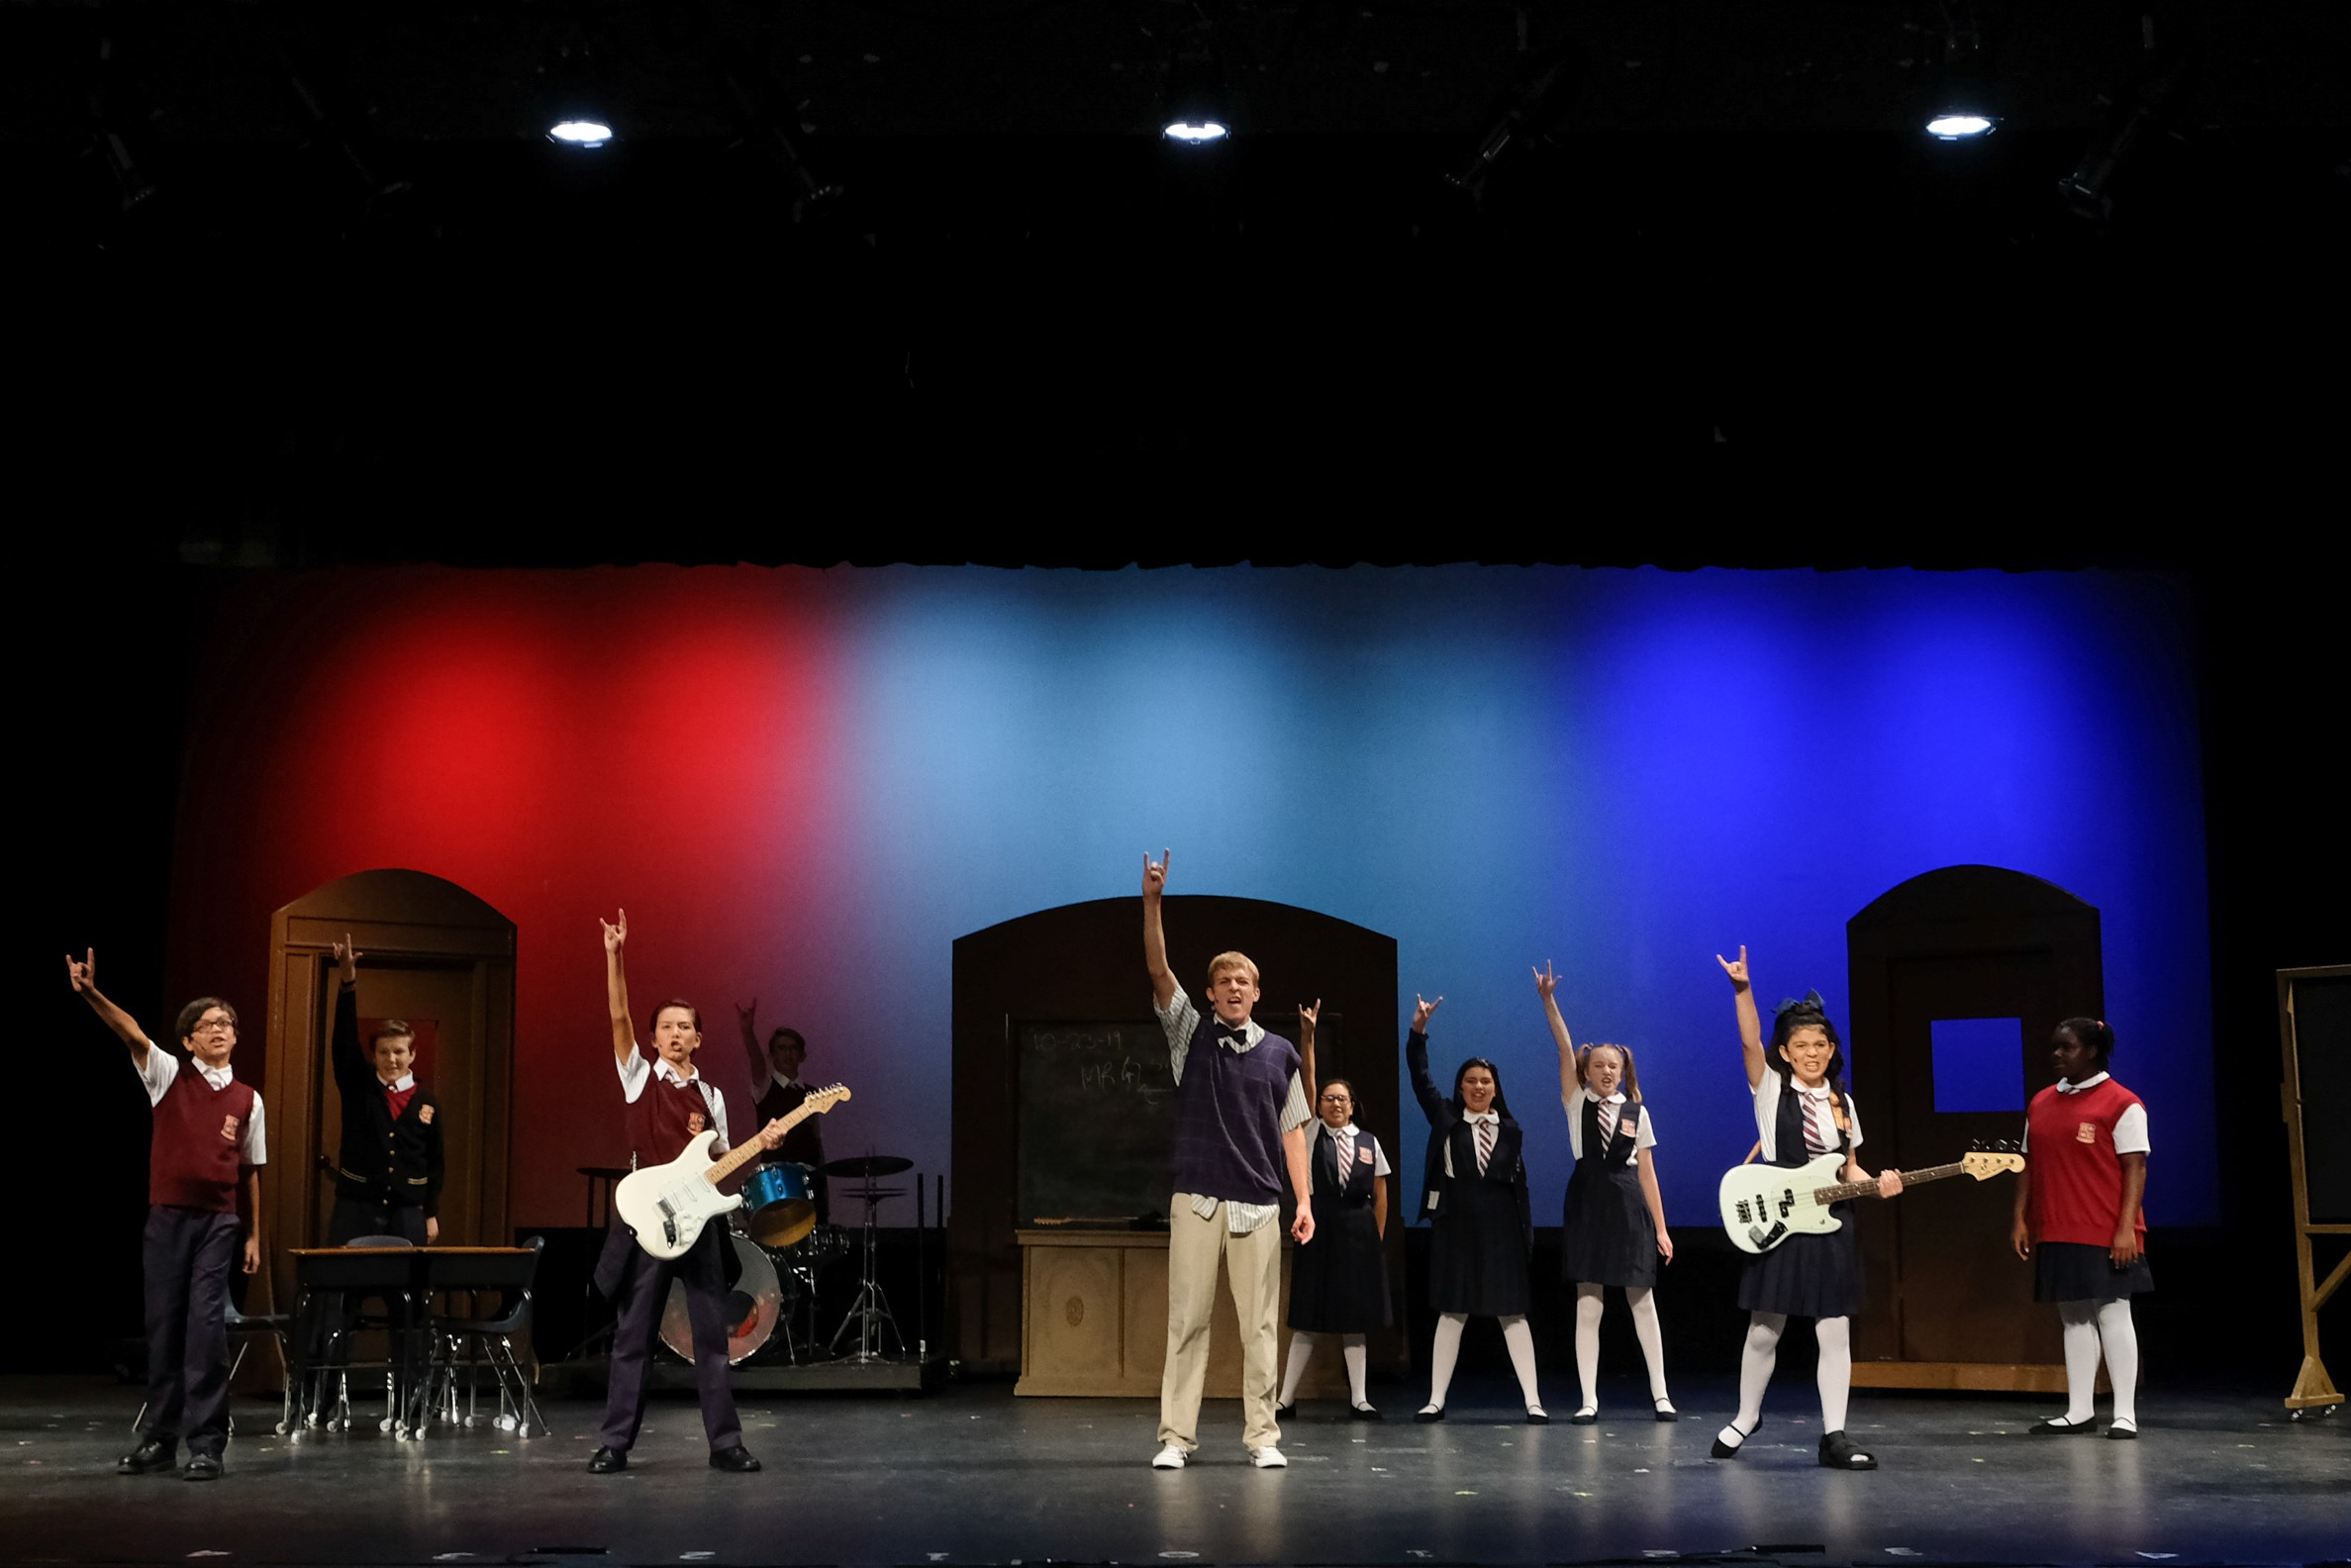 Despite setback, the show goes on for School of Rock